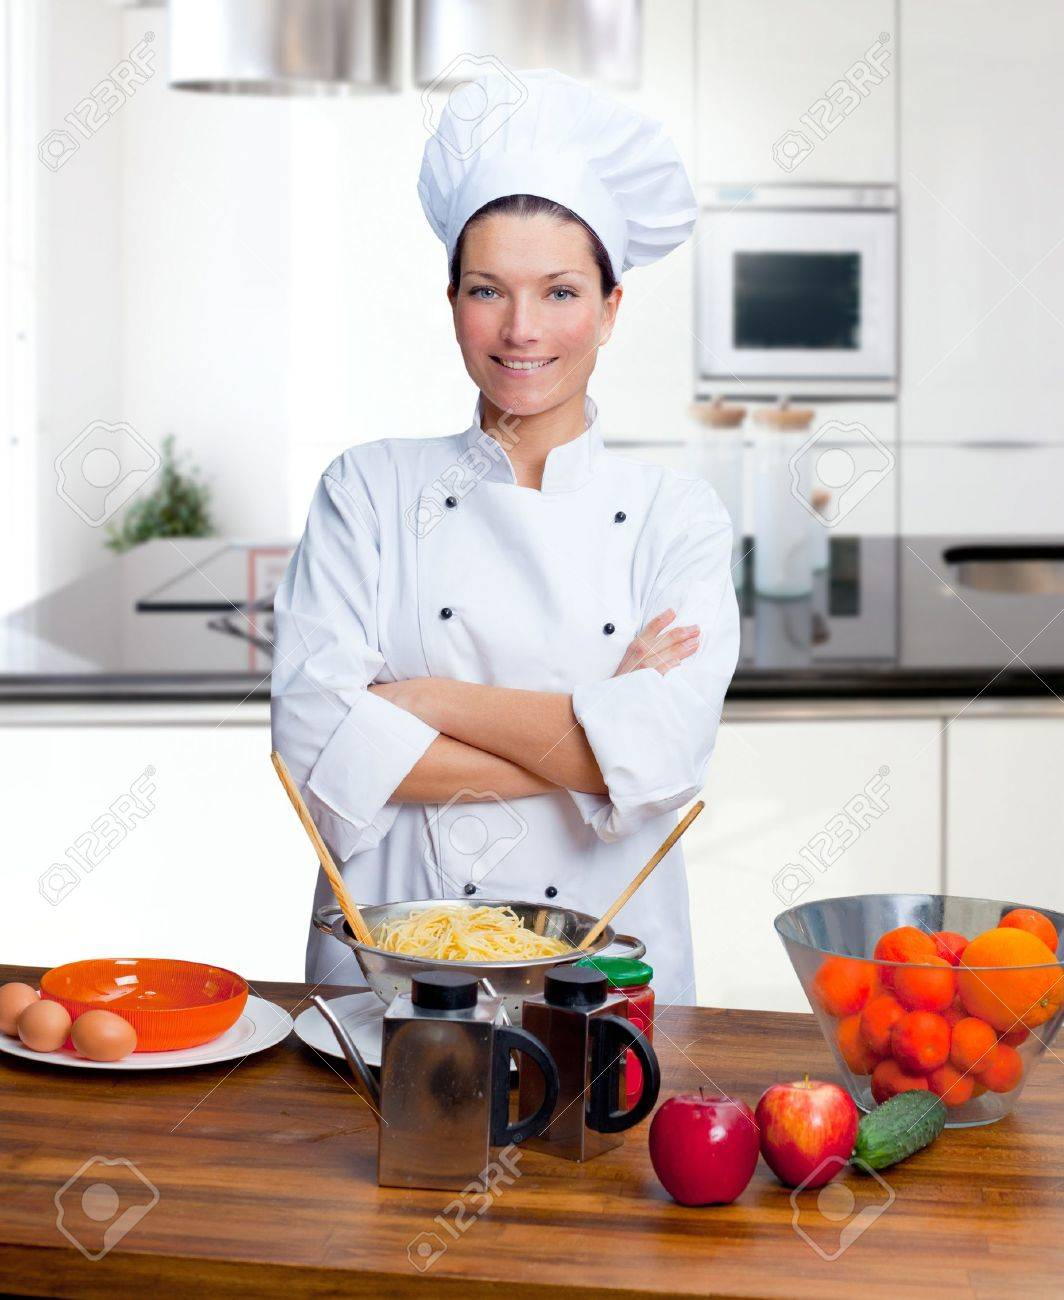 Chef Woman Portrait With White Uniform In The Kitchen Stock Photo ...